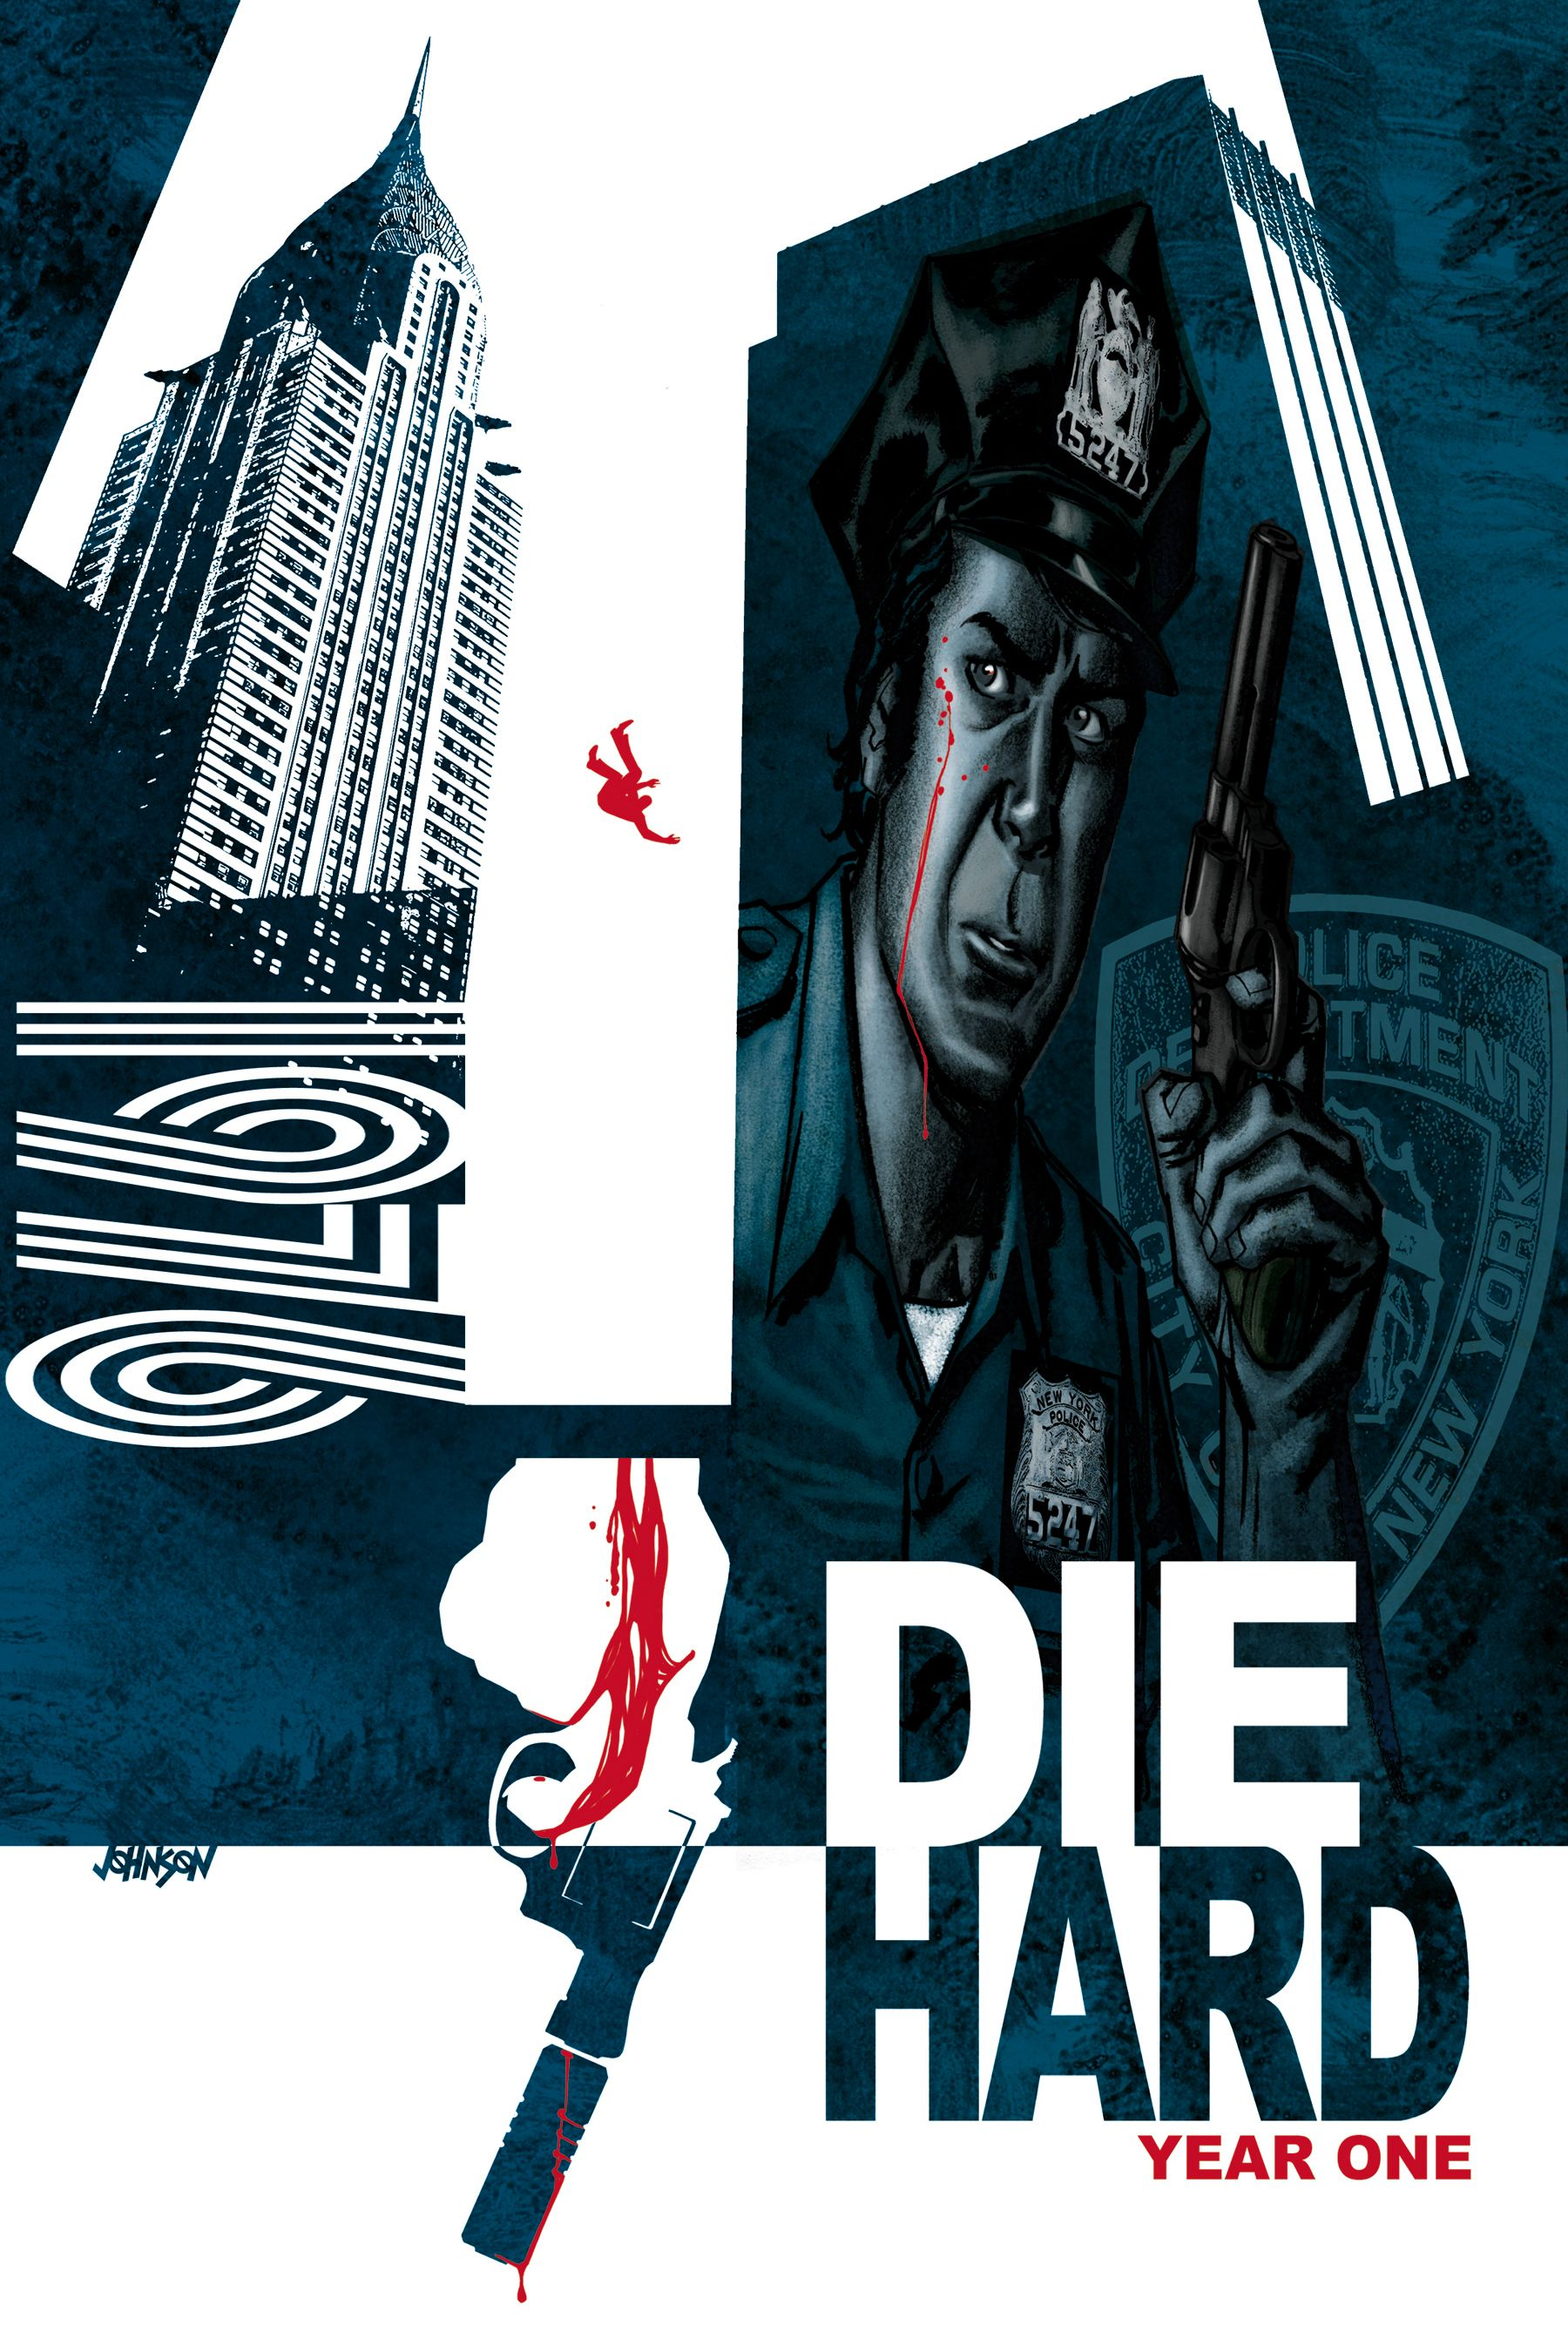 Die-hard-year-one-vol-1-9781608865062_hr